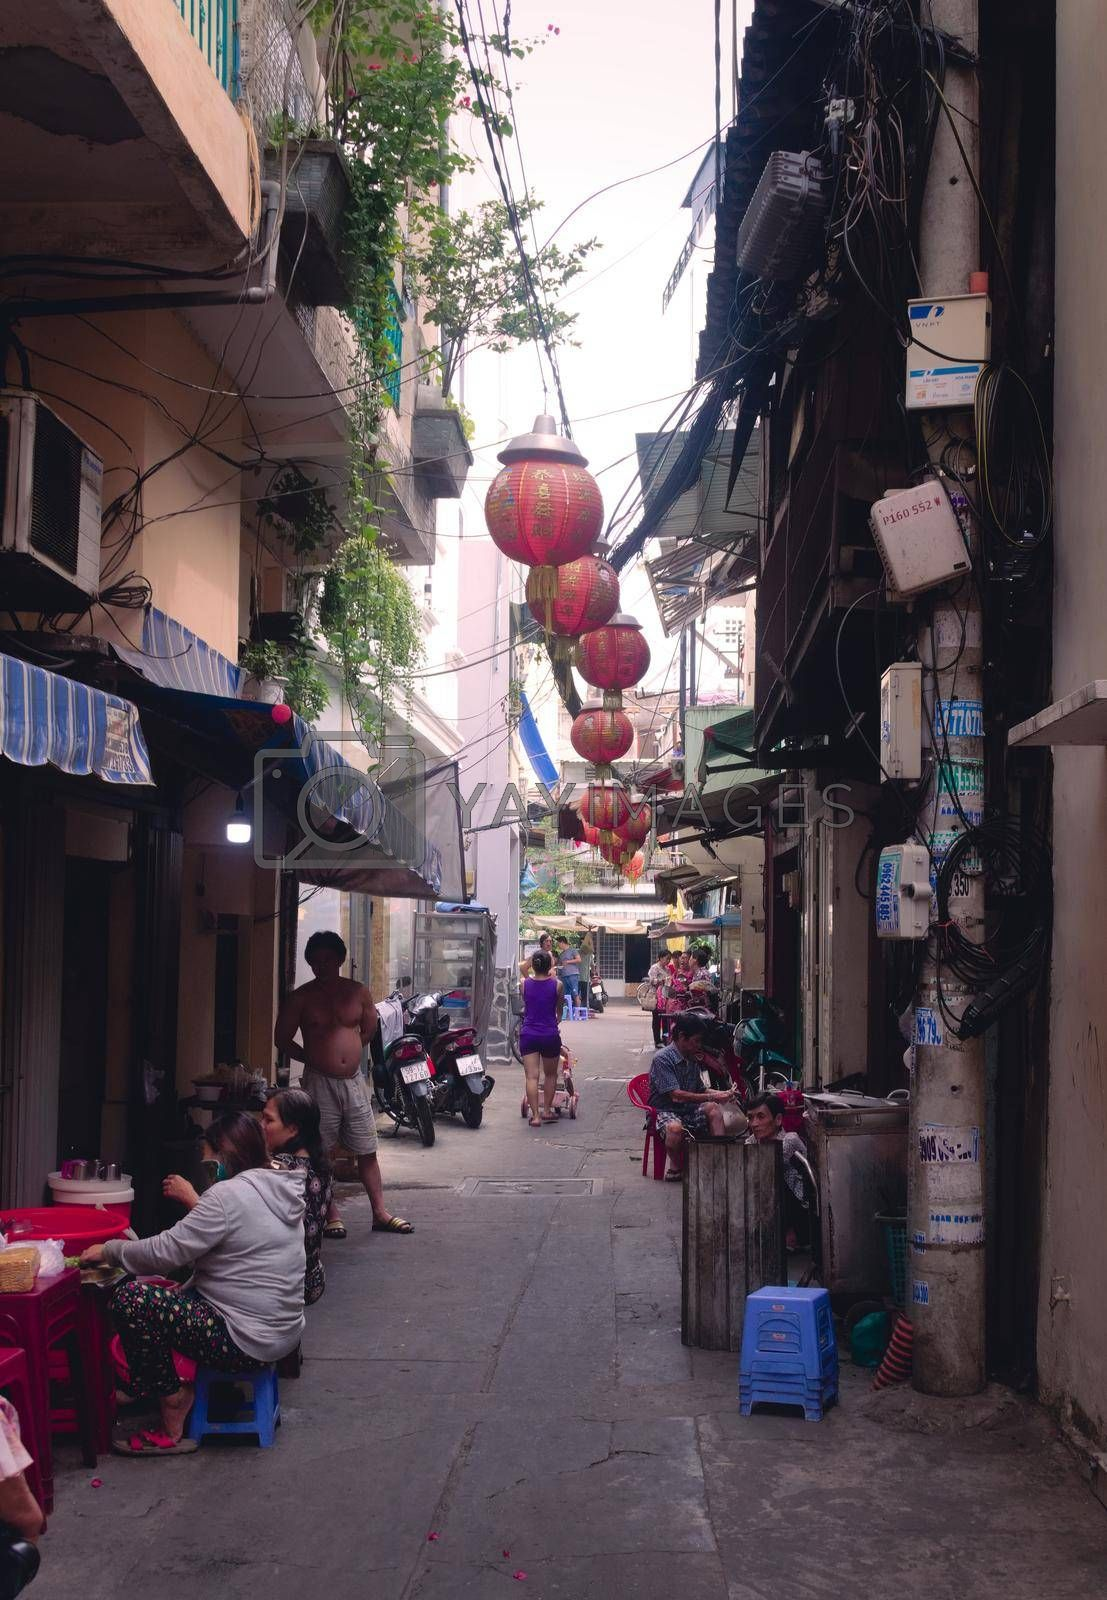 Royalty free image of 2019-11-10 / Ho Chi Minh City, Vietnam - Everyday life scene. Narrow back alley in a poor area of the city. by hernan_hyper